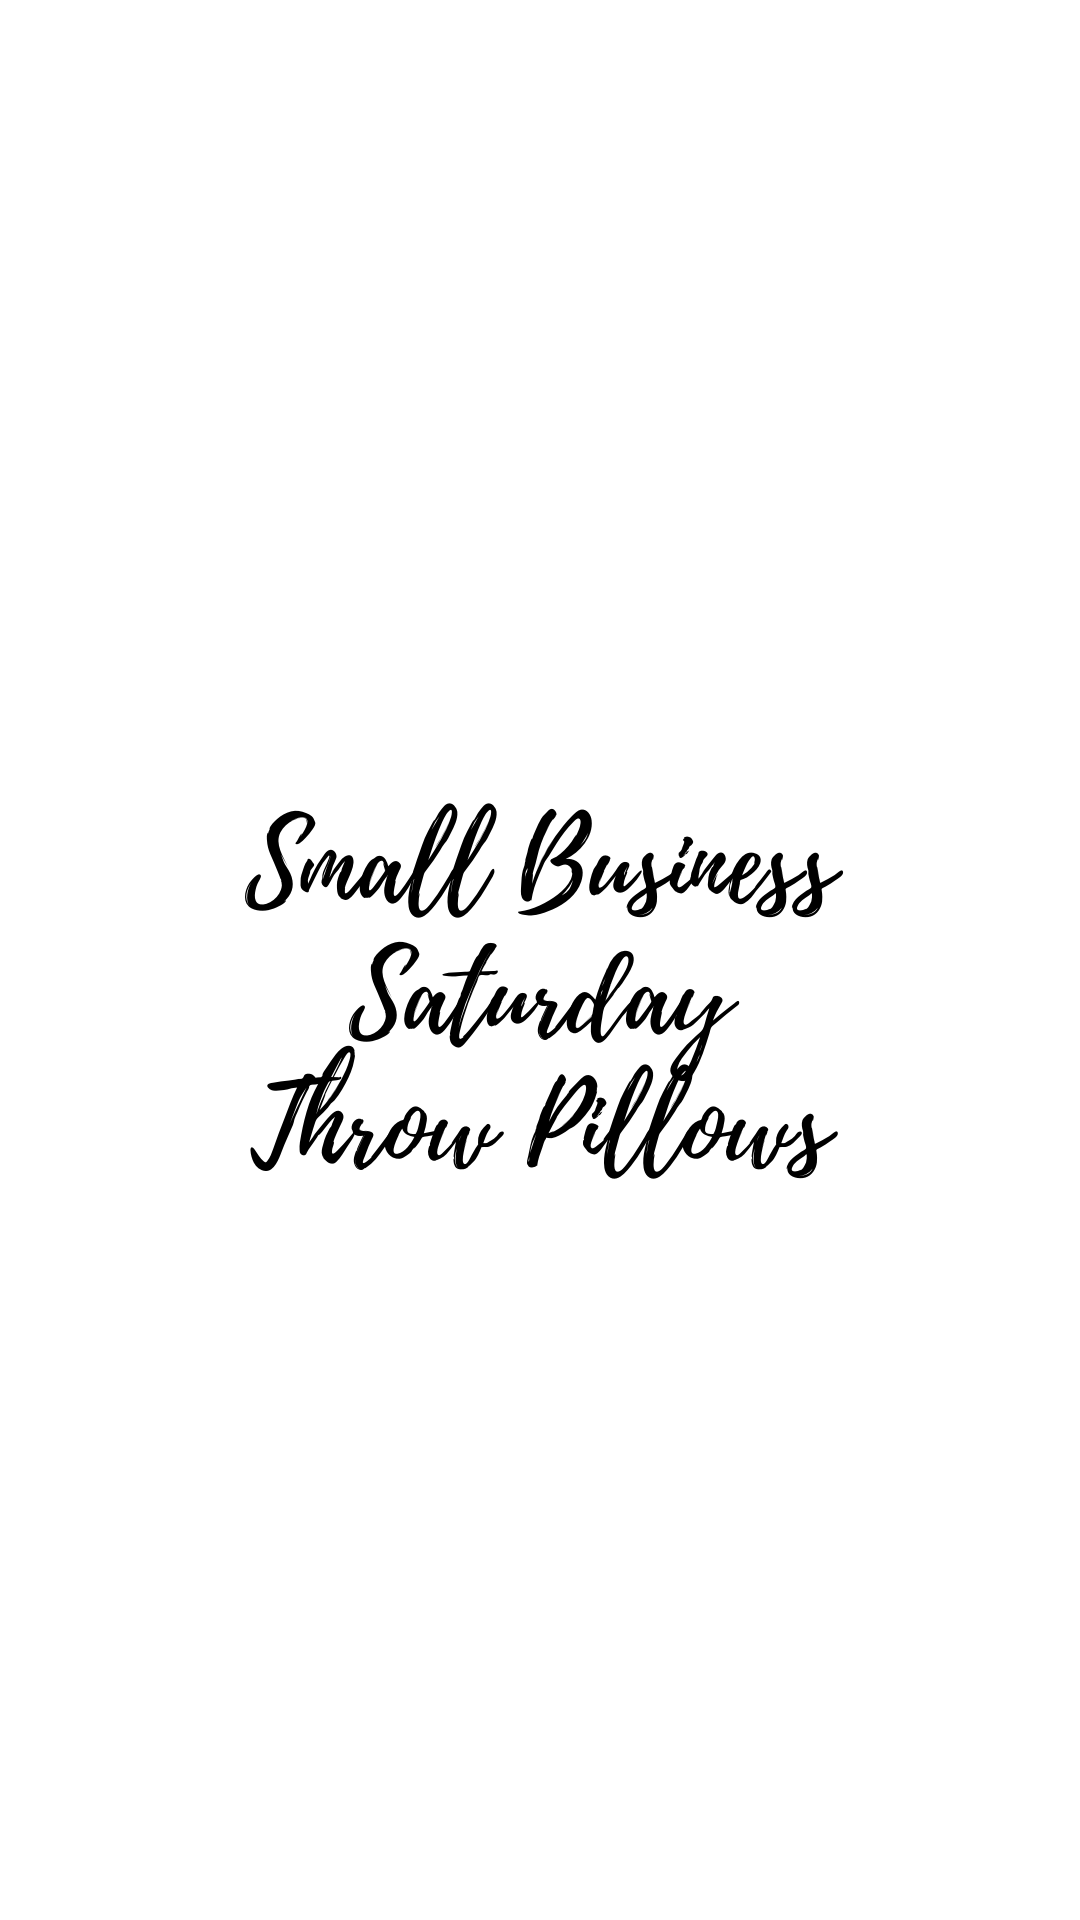 Small Business Saturday- Throw Pillows